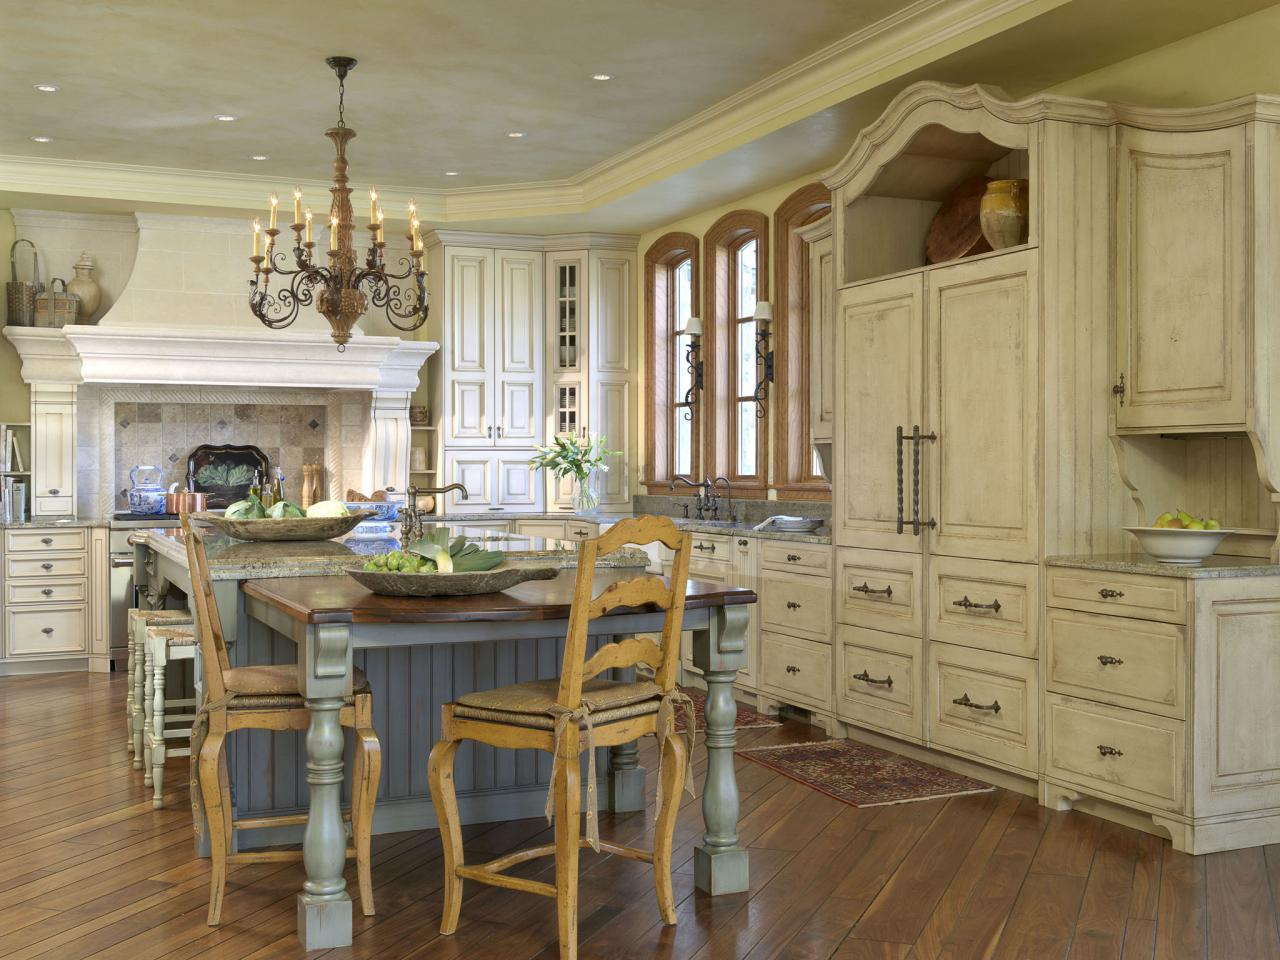 Antique kitchen islands pictures ideas tips from hgtv - Country style kitchen cabinets design ...